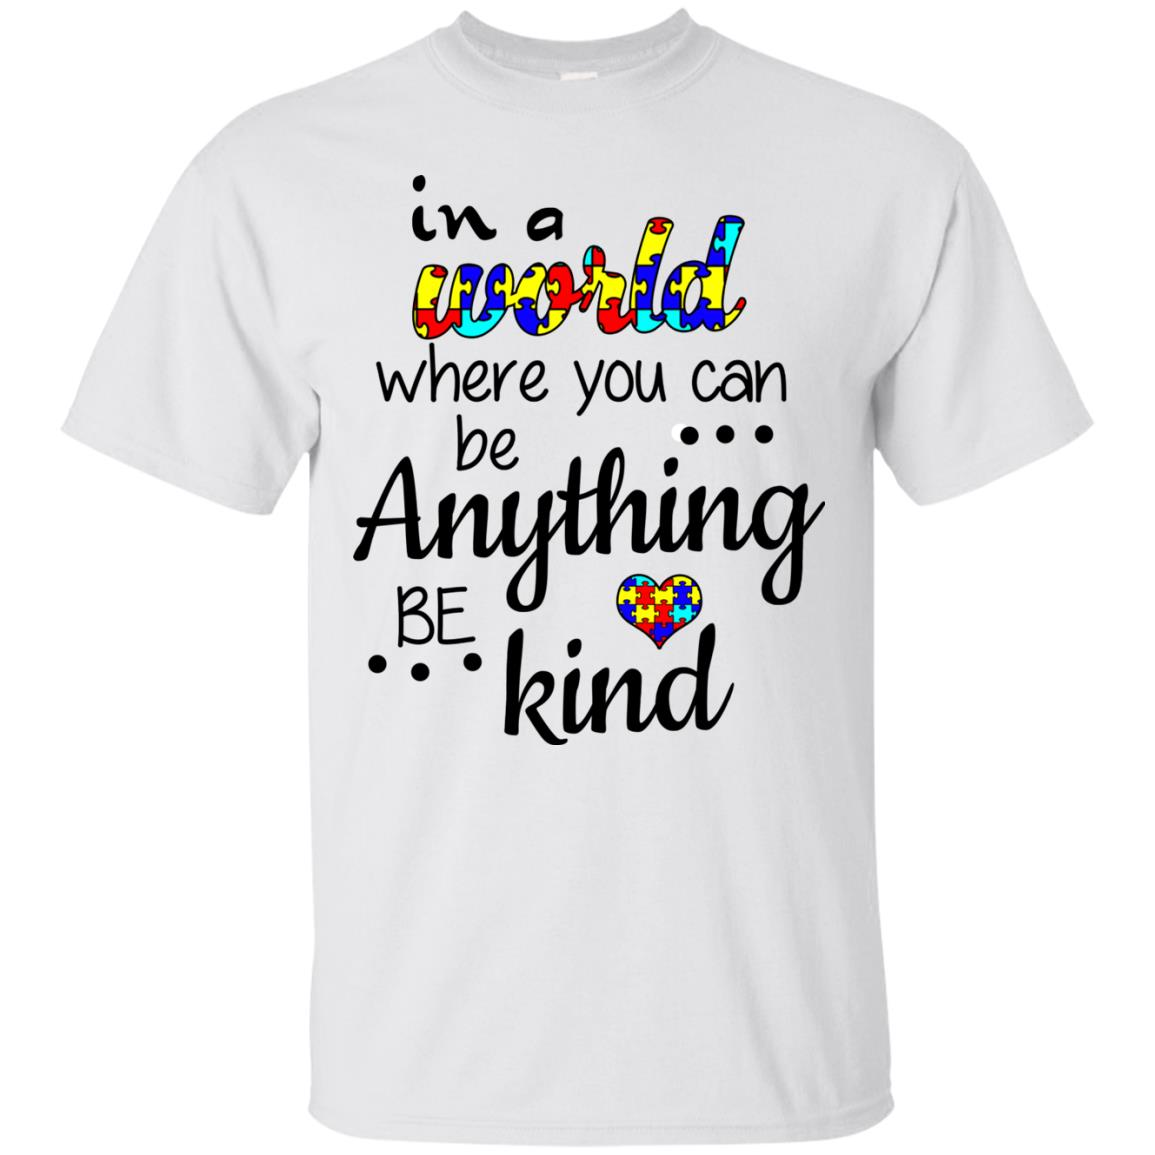 image 665 - Autism: In a World Where You Can Be Anything Be Kind Shirt